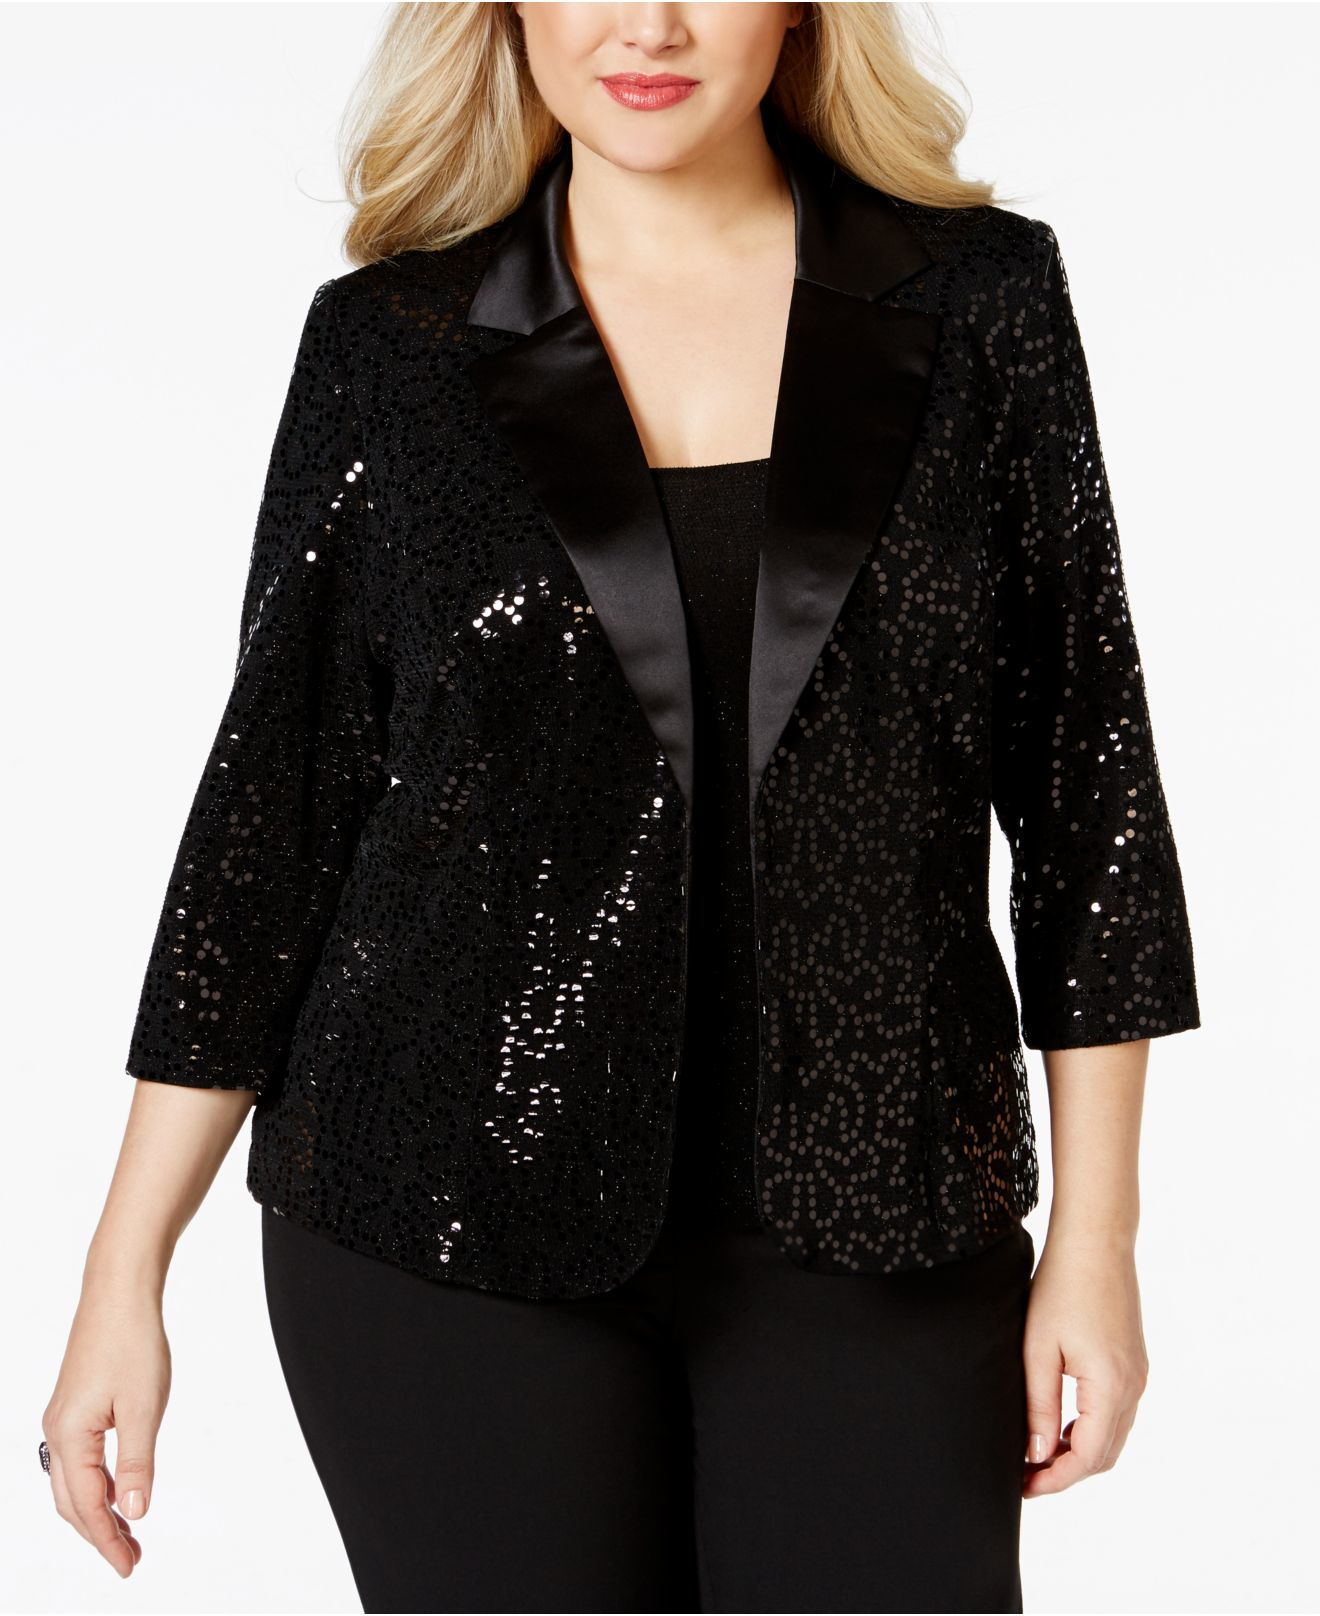 8458cb6ab2a4a Lyst - Alex Evenings Plus Size Glitter   Sequin Top   Jacket Set in ...